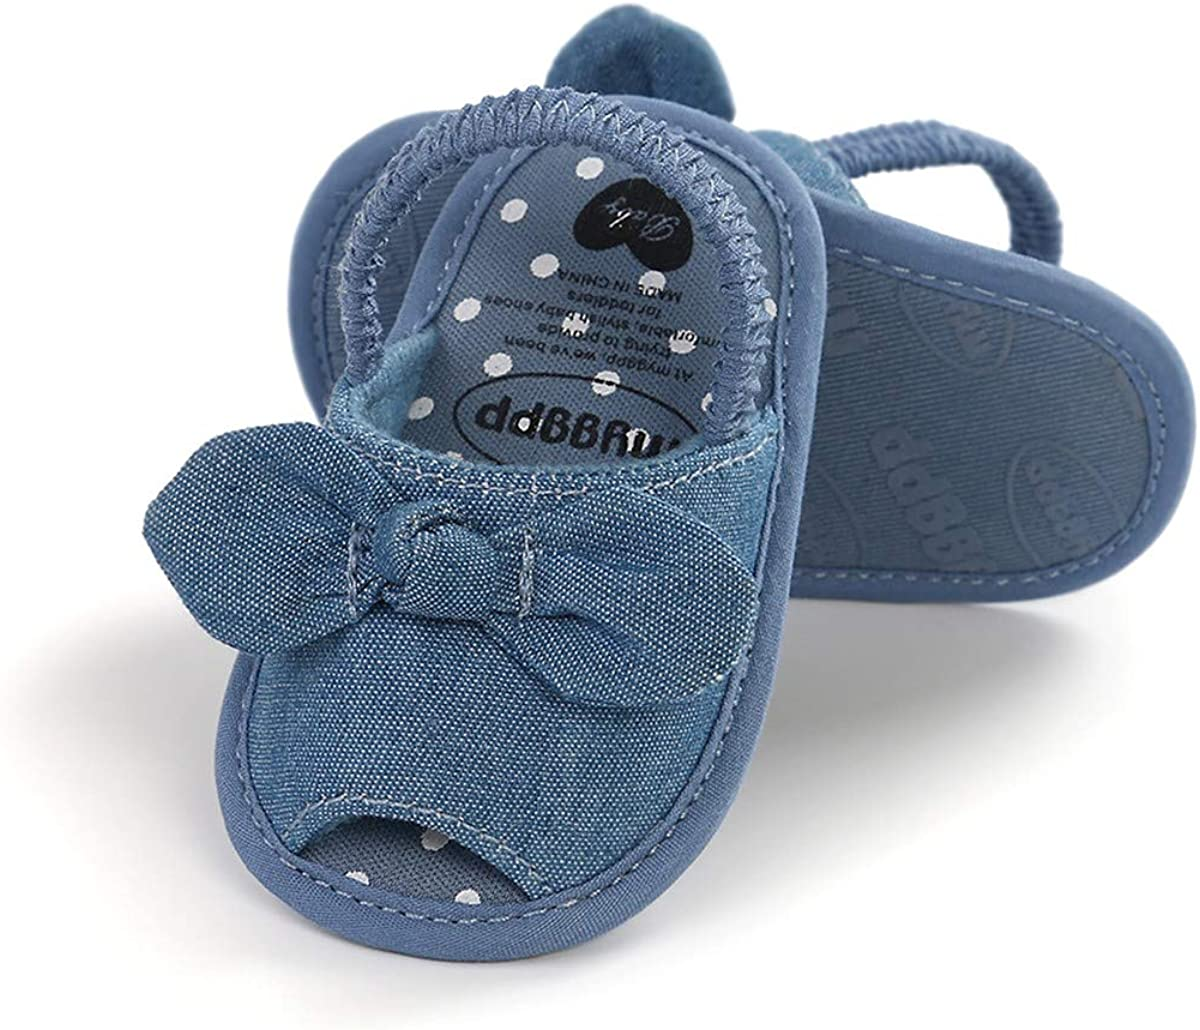 FE/&H Baby Girls Sandals Faux Fur Slippers with Elastic Back Strap Fuzzy Slides Fluffy Soft Flat First Walker Toddler Boy House Shoes 12-18 Months